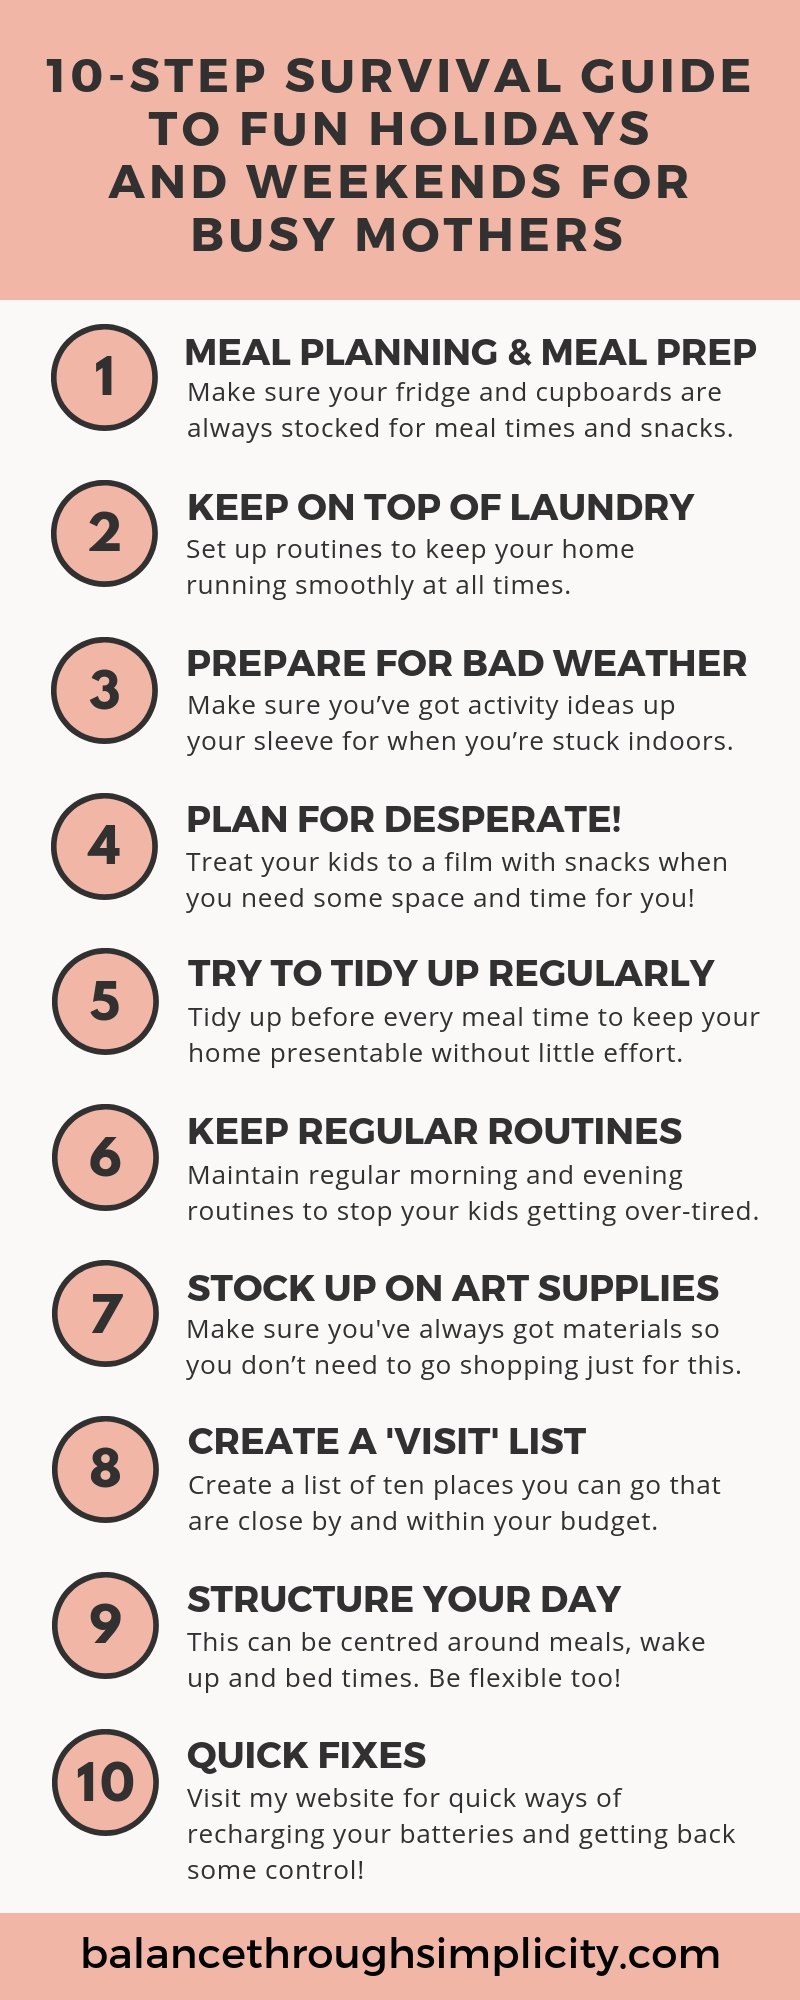 10 Step Survival Guide To Fun Weekends And Holidays For The Busy Mother